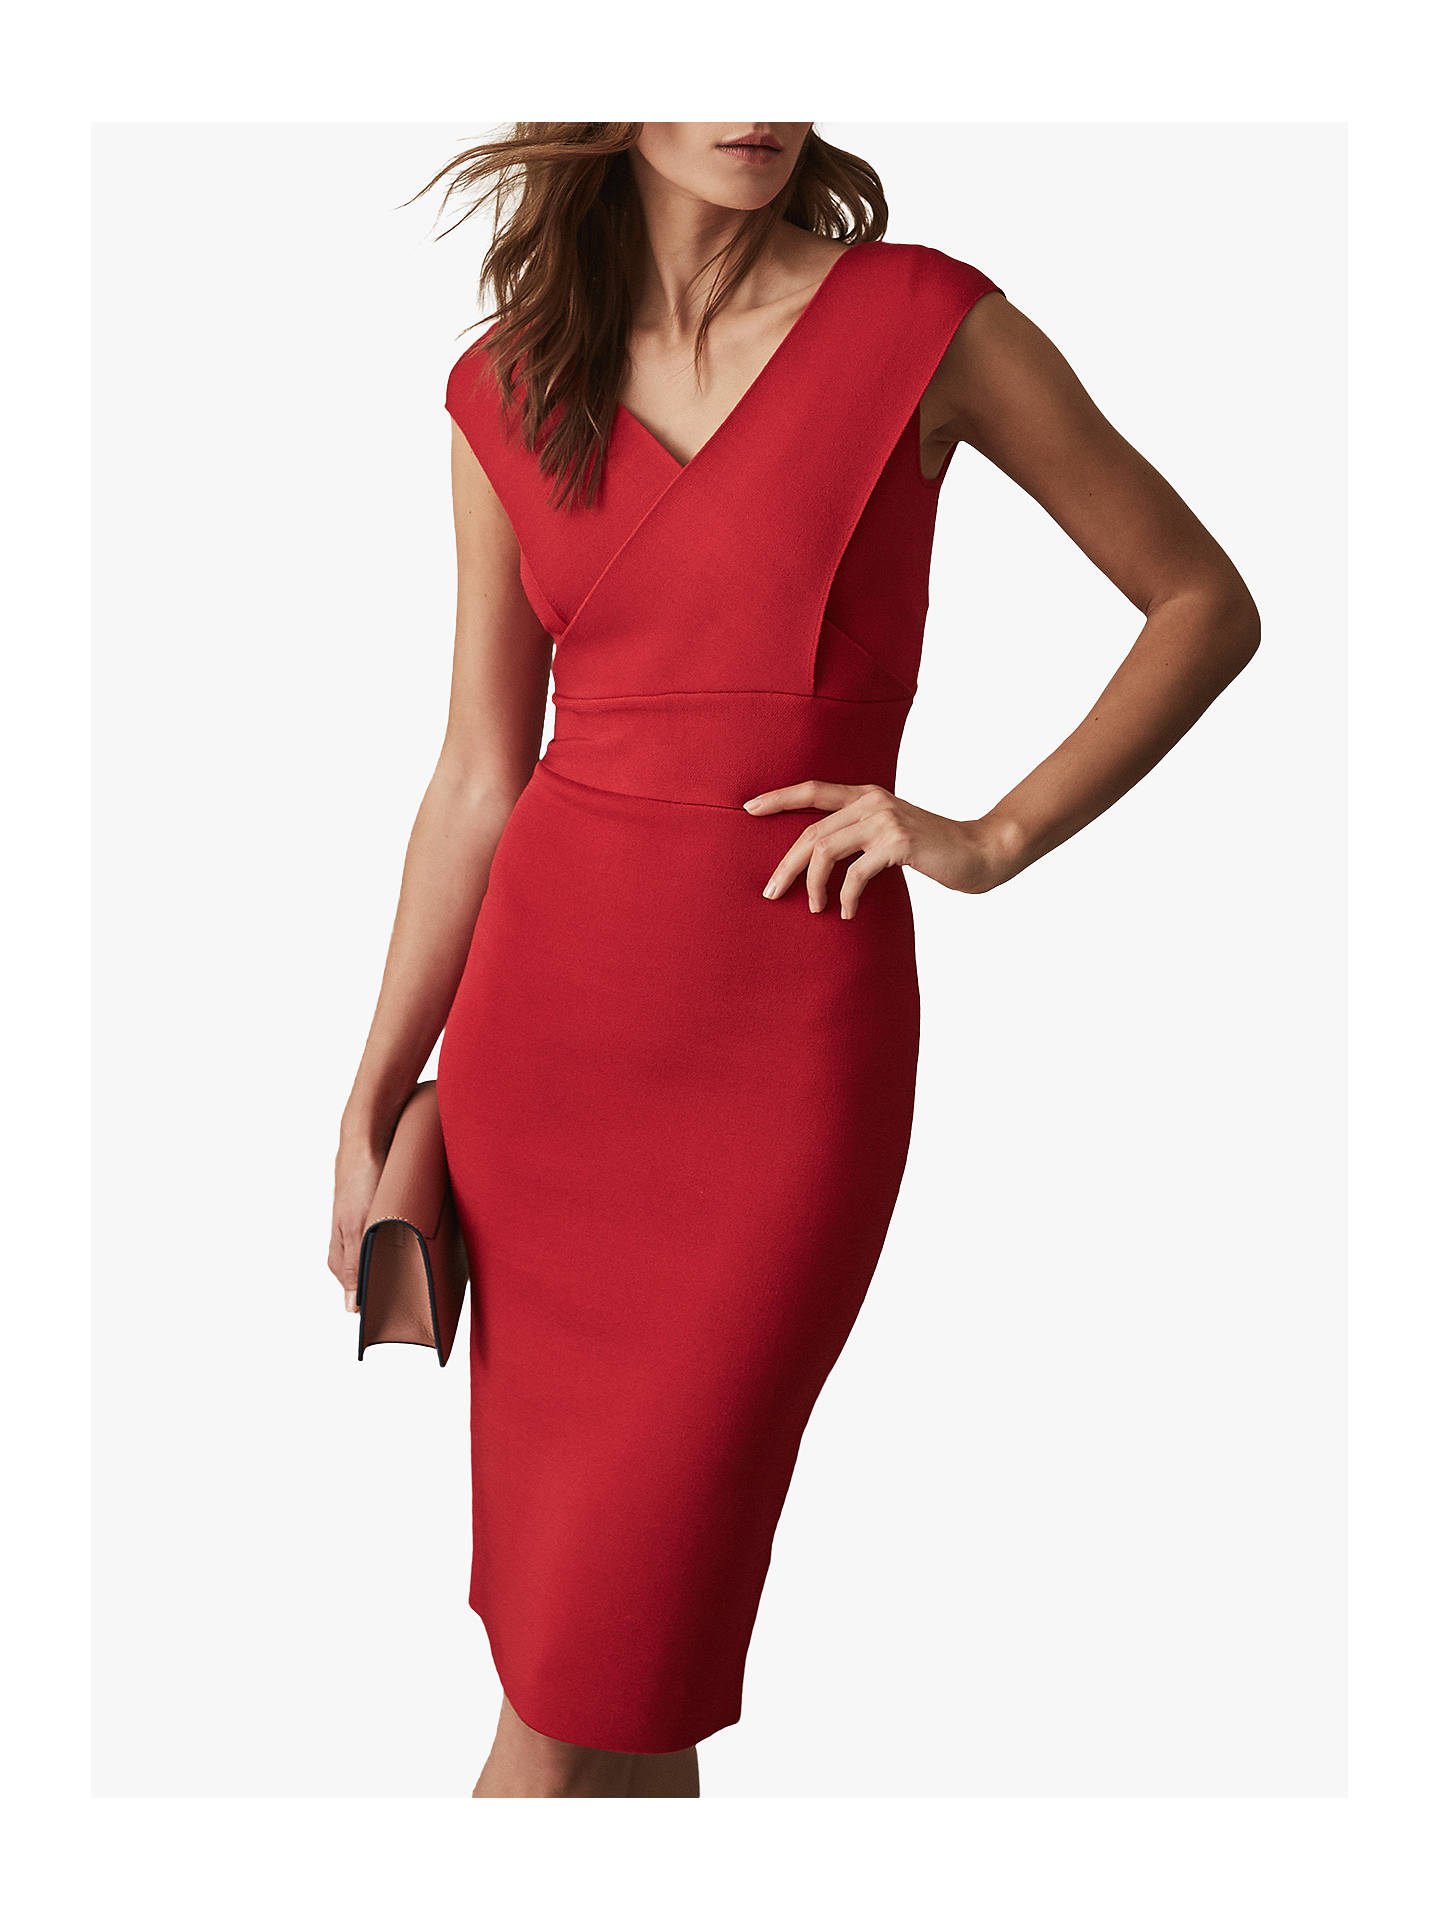 b7b0efa39 Red Evening Dress John Lewis